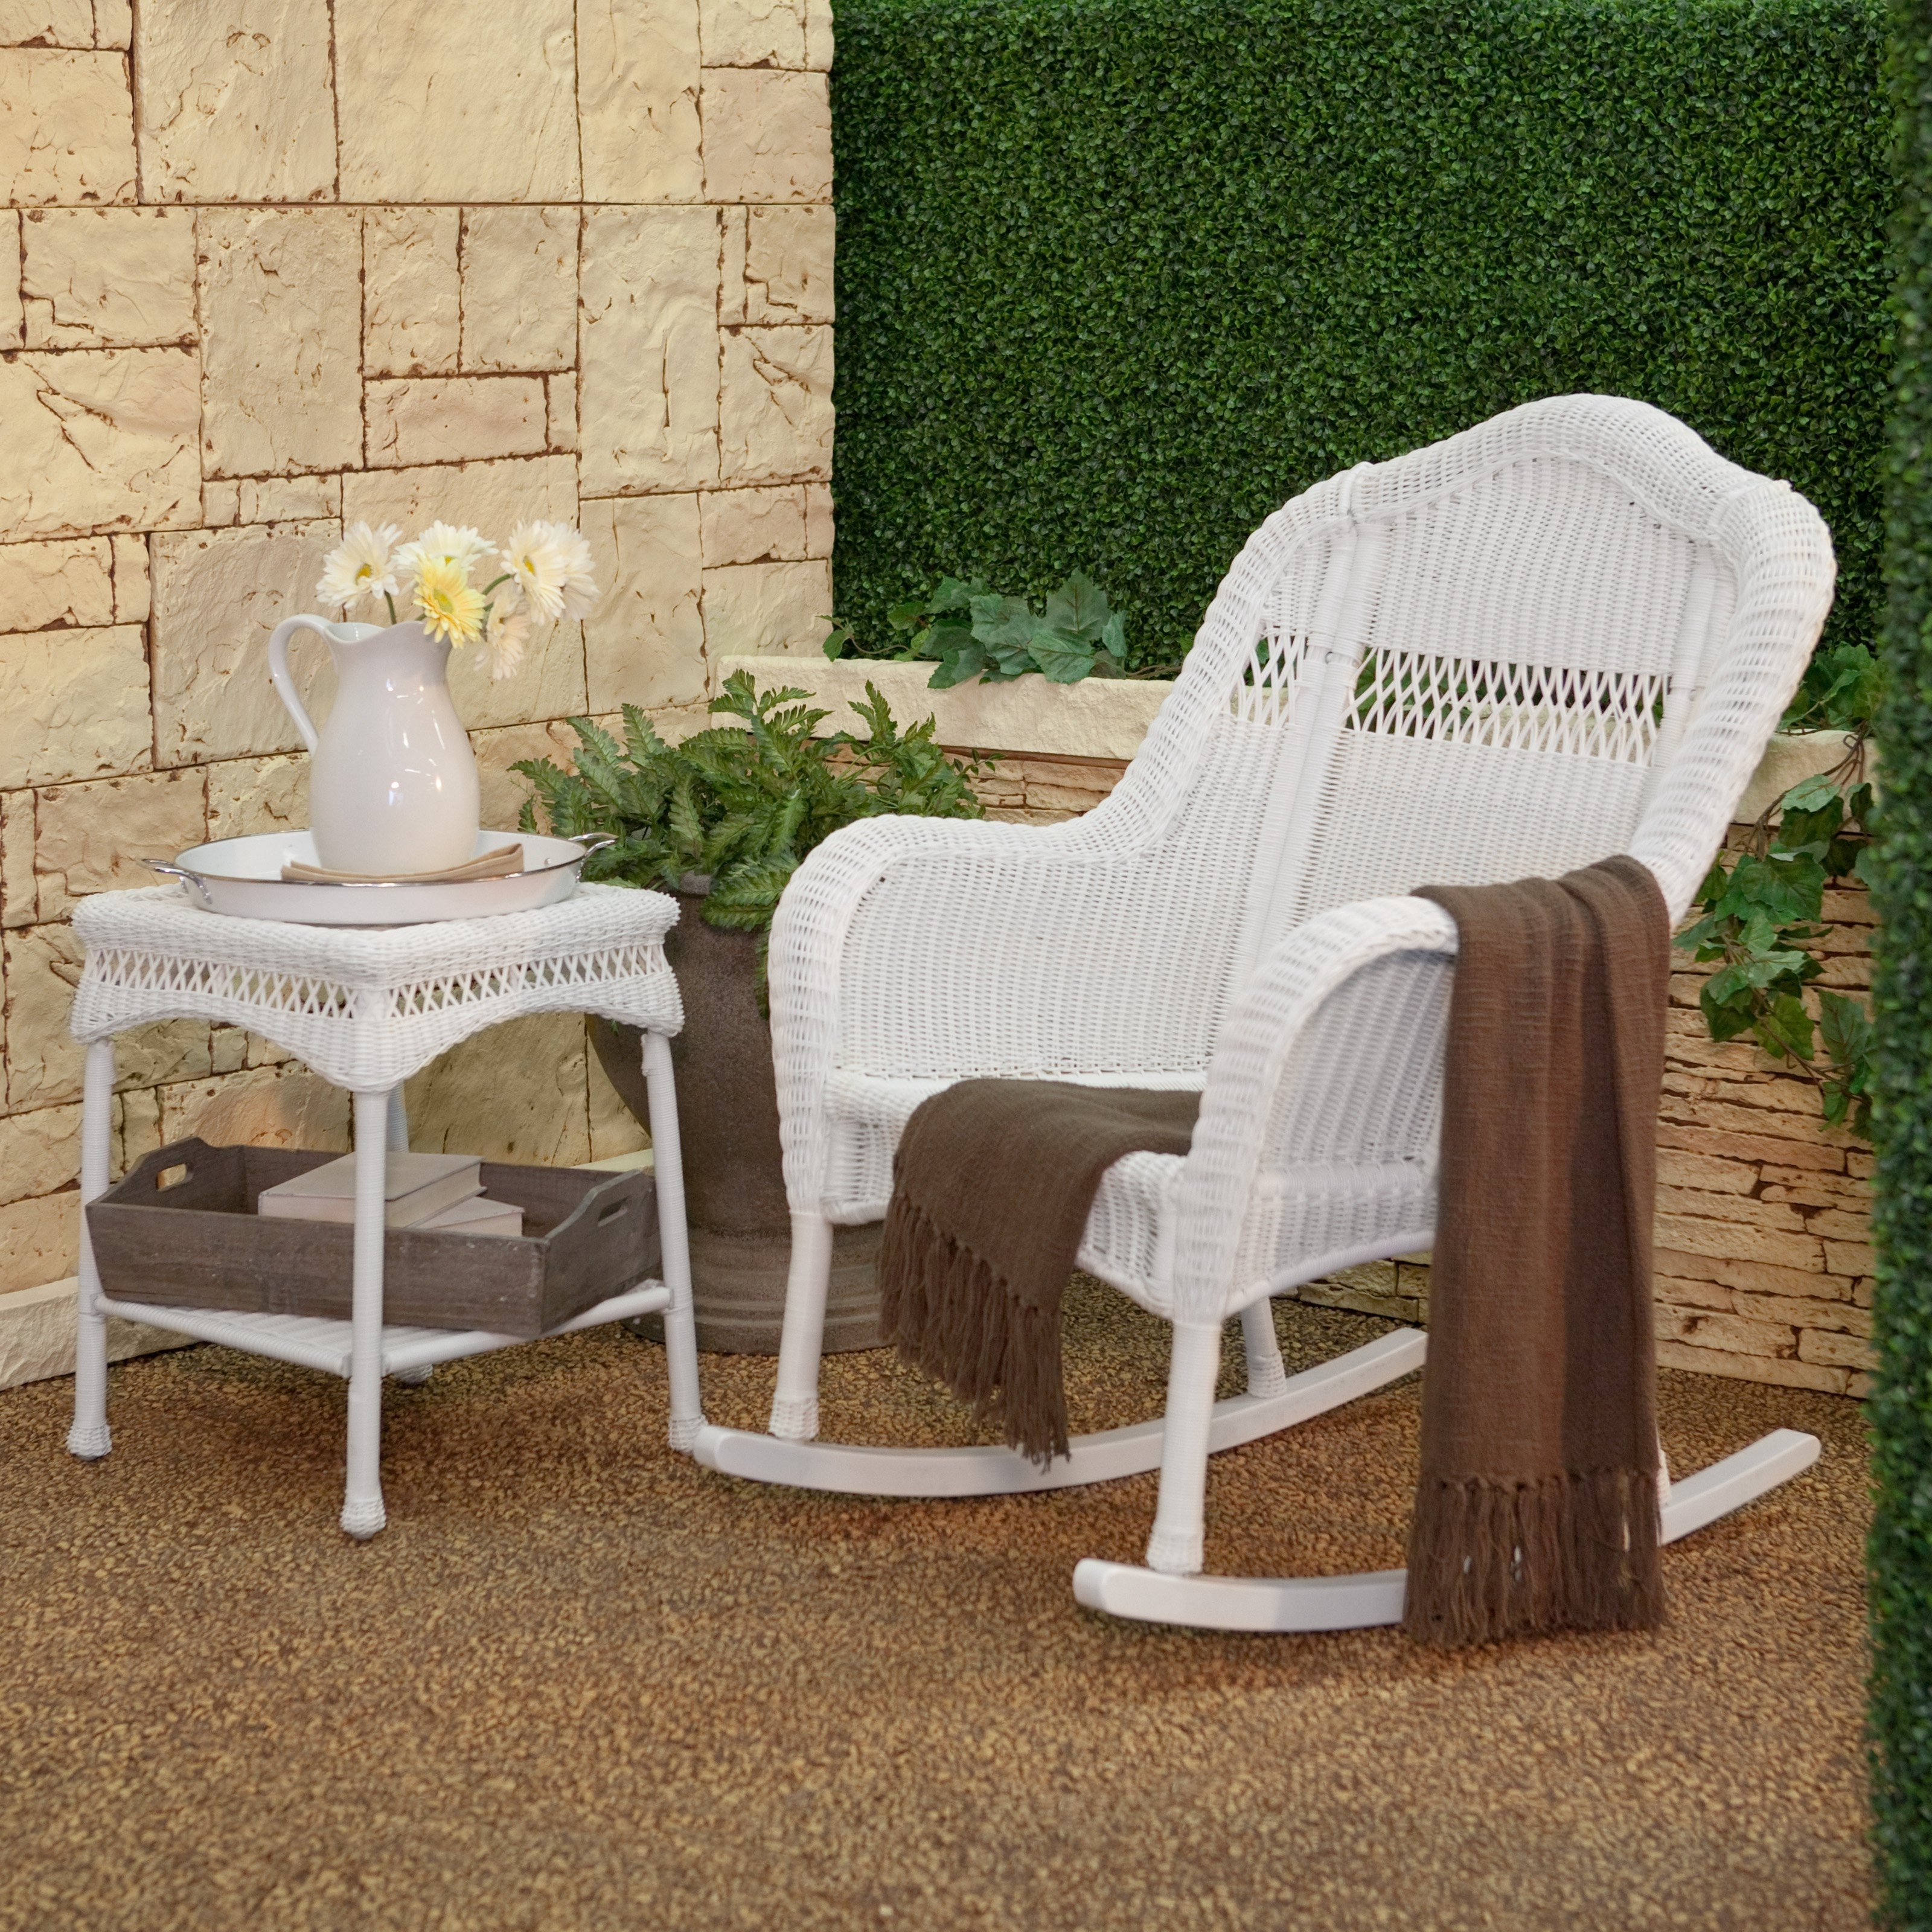 Coral Coast Casco Bay Resin Wicker Rocking Chair With Cushion Option Throughout Wicker Rocking Chairs With Cushions (#3 of 15)